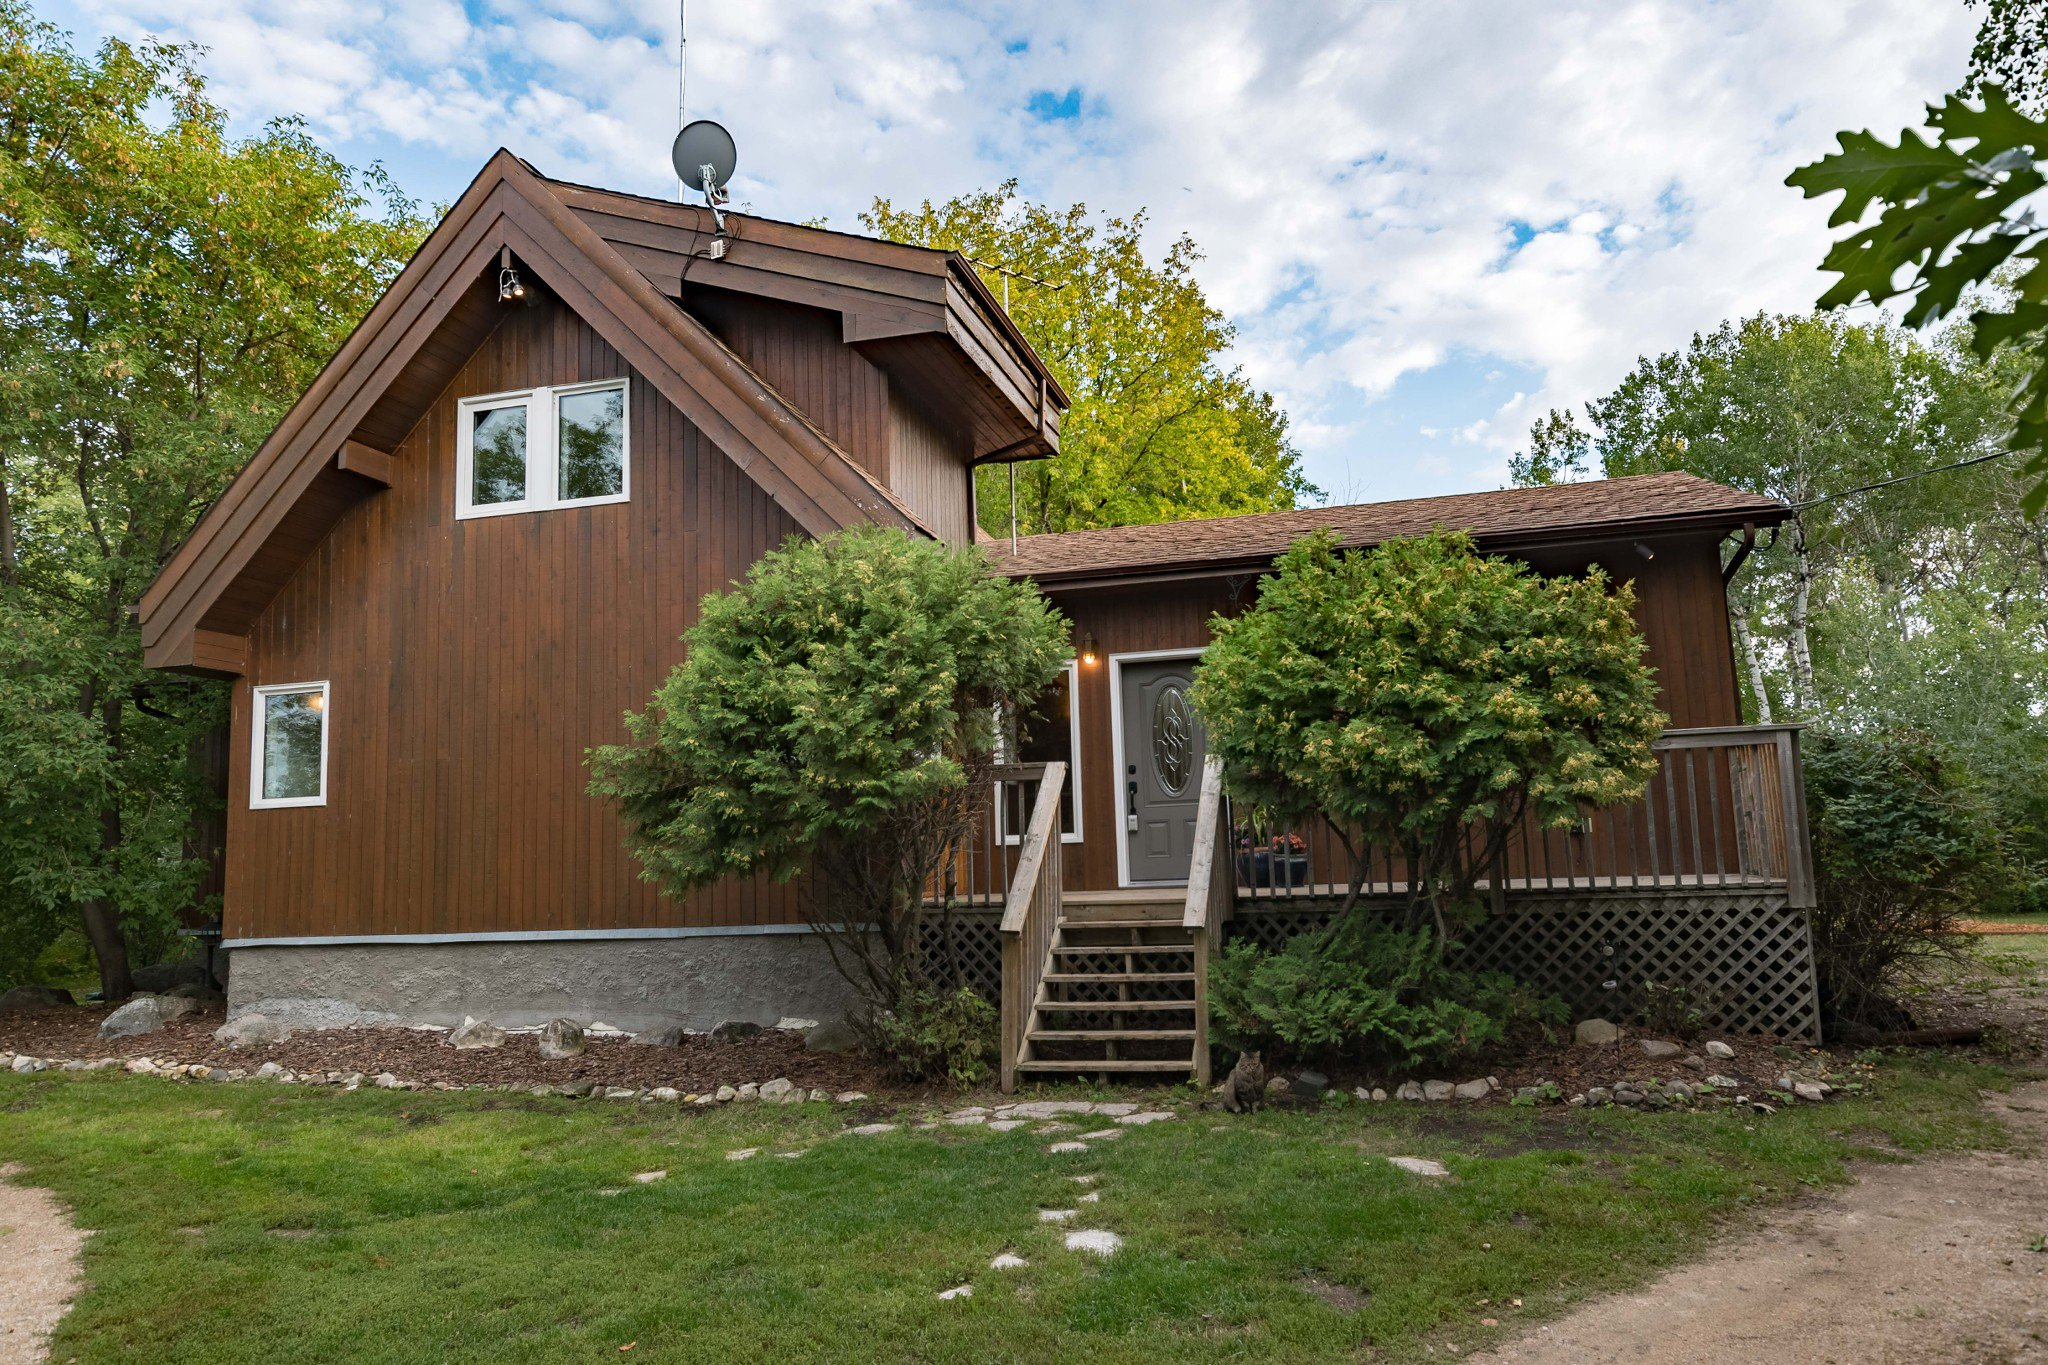 HORSE LOVER'S DREAM! Fabulous Location ½ mile East of Birds Hill Park. 1616 sf 'A-Frame' Style 3 Bedroom Lindal Cedar Home on Mature Treed 6.84 acre lot. Circle driveway to front of house & separate driveway to barn & paddocks.